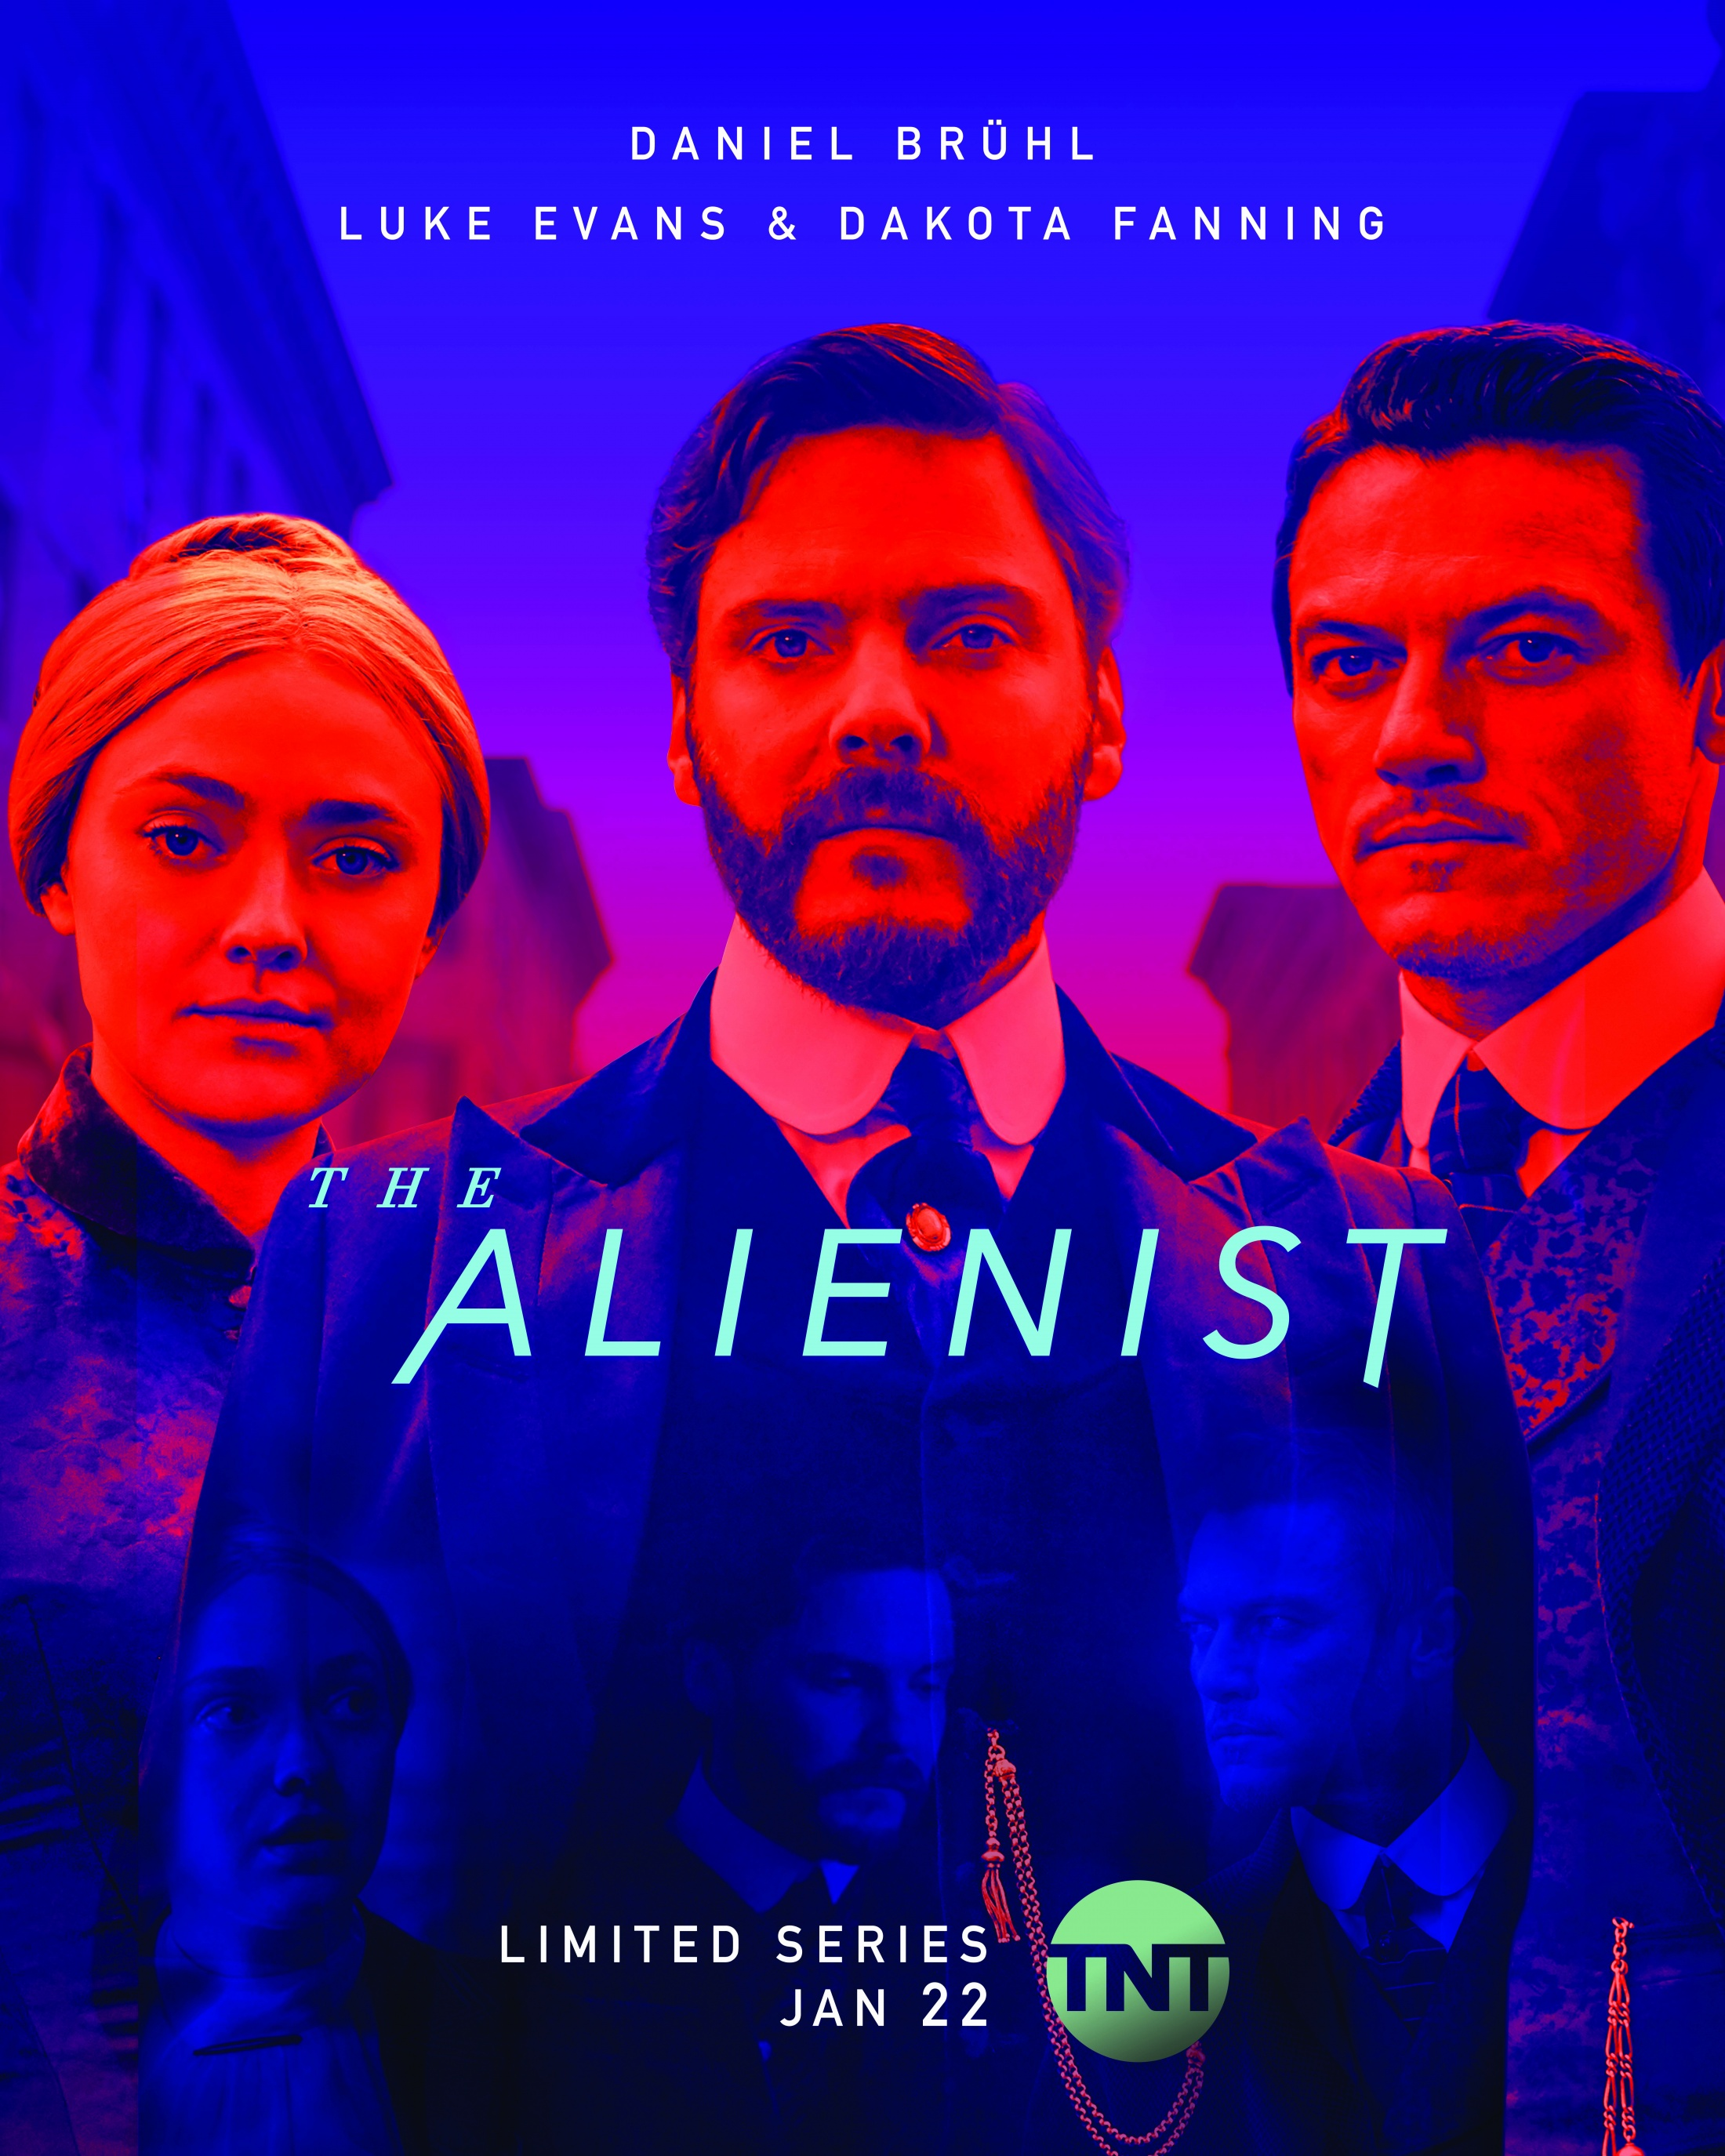 Image Media for The Alienist Docuseries Episode 2